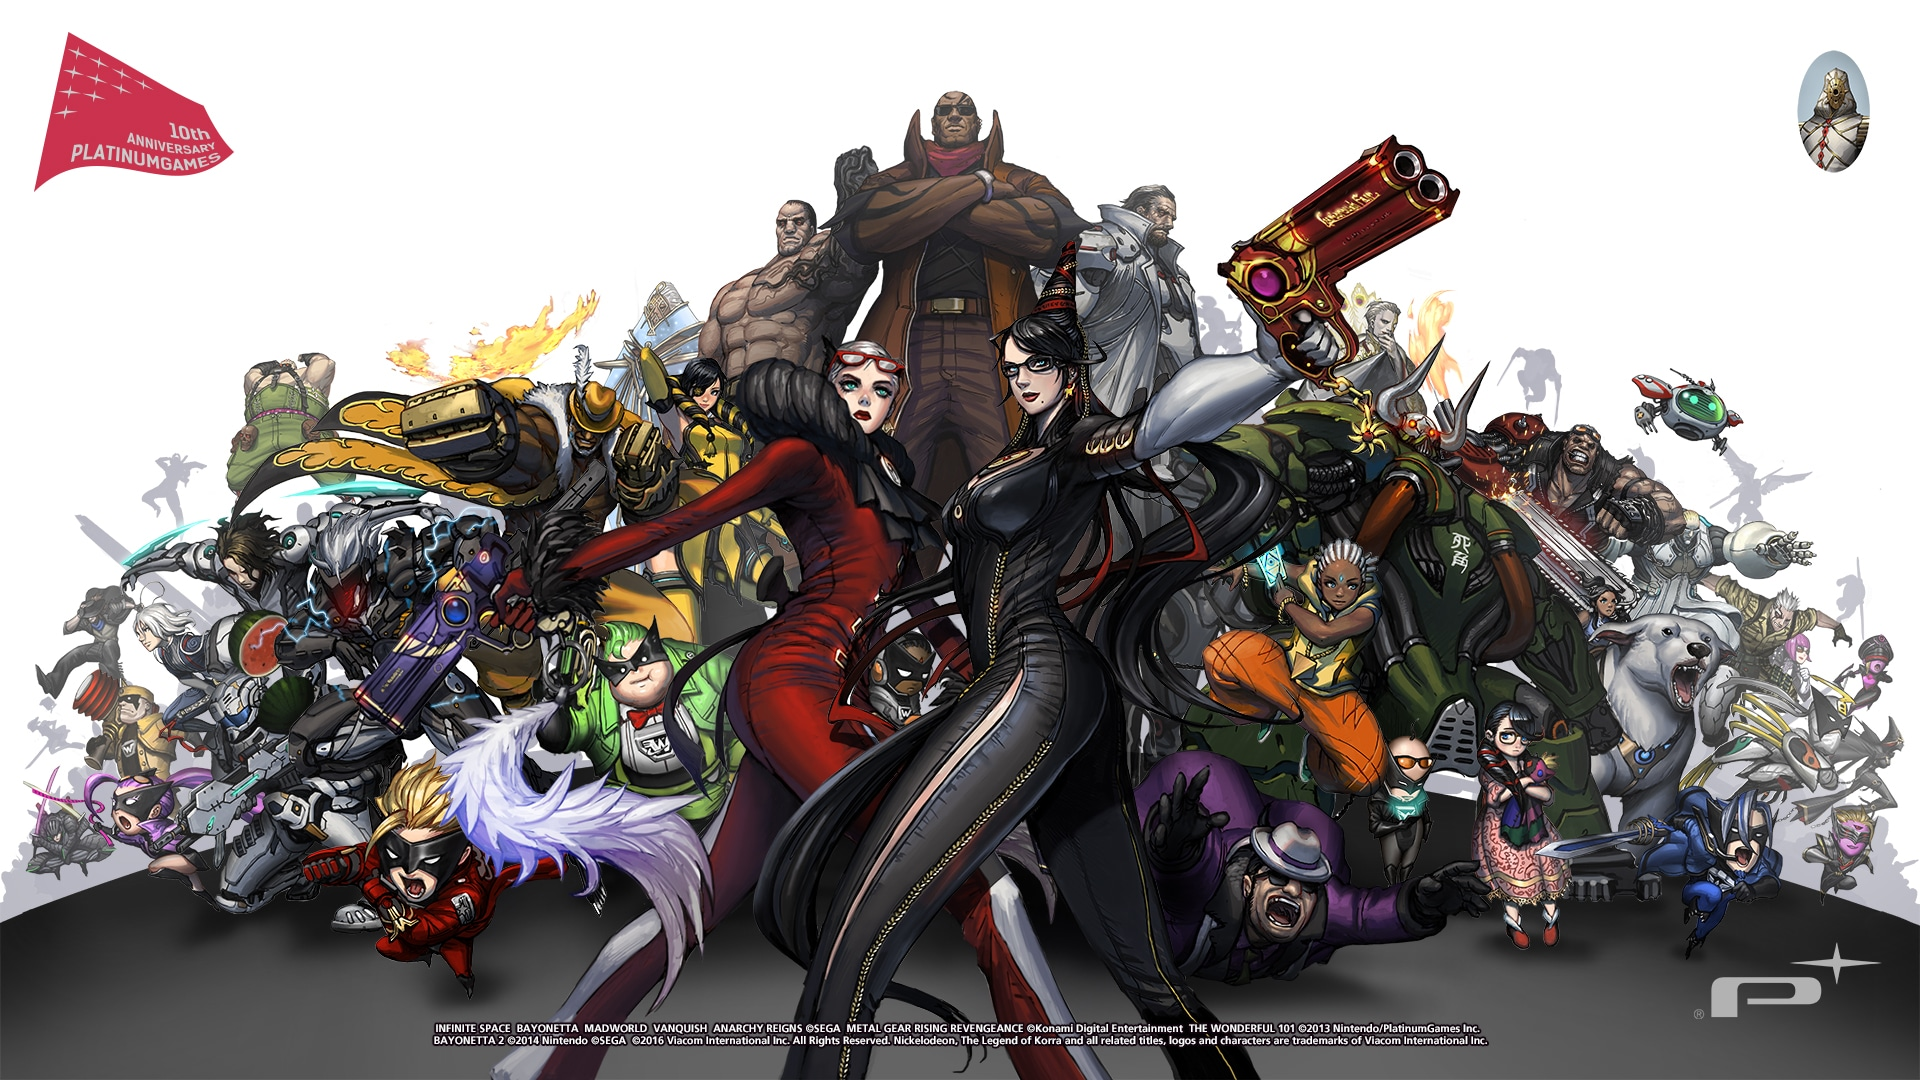 Emily Rogers: PlatinumGames has more wonderful things then Bayonetta 3